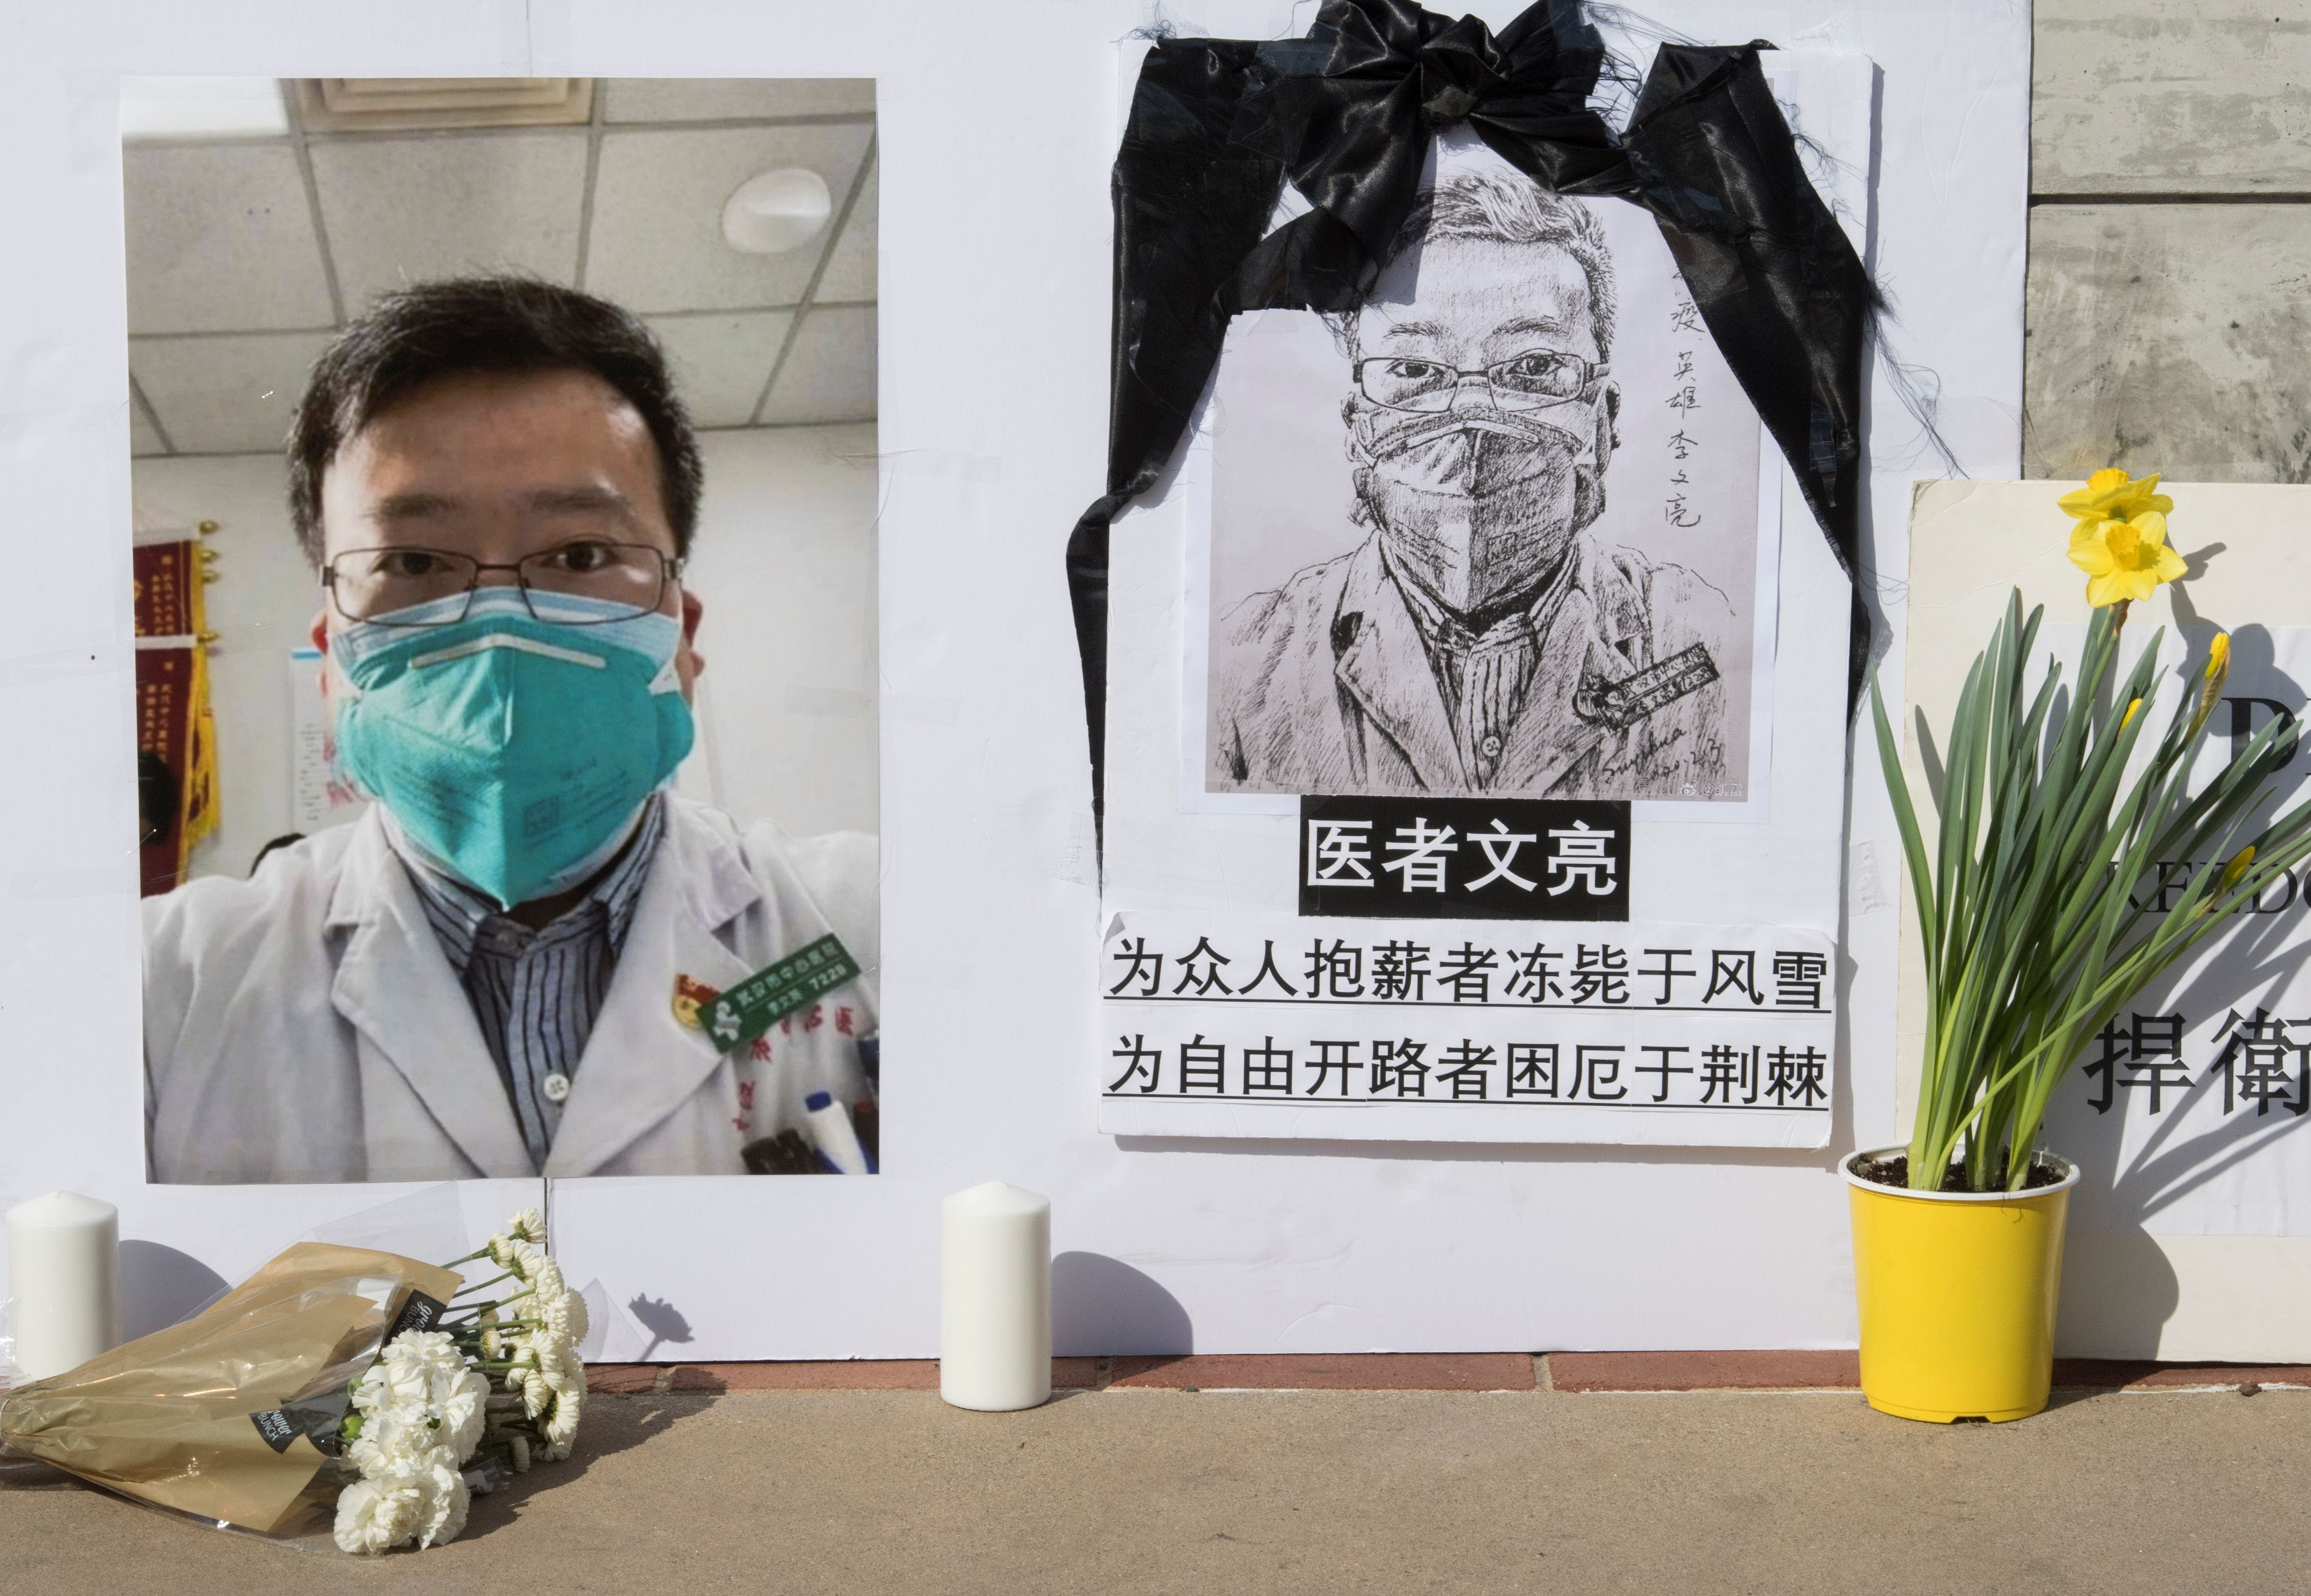 TOPSHOT - A memorial for Dr Li Wenliang, who was the whistleblower of the Coronavirus, Covid-19, that originated in Wuhan, China and caused the doctors death in that city, is pictured outside the UCLA campus in Westwood, California, on February 15, 2020. - The death toll from the new coronavirus outbreak surpassed 1,600 in China on Sunday, with the first fatality reported outside Asia fuelling global concerns. (Photo by Mark RALSTON / AFP) (Photo by MARK RALSTON/AFP via Getty Images)